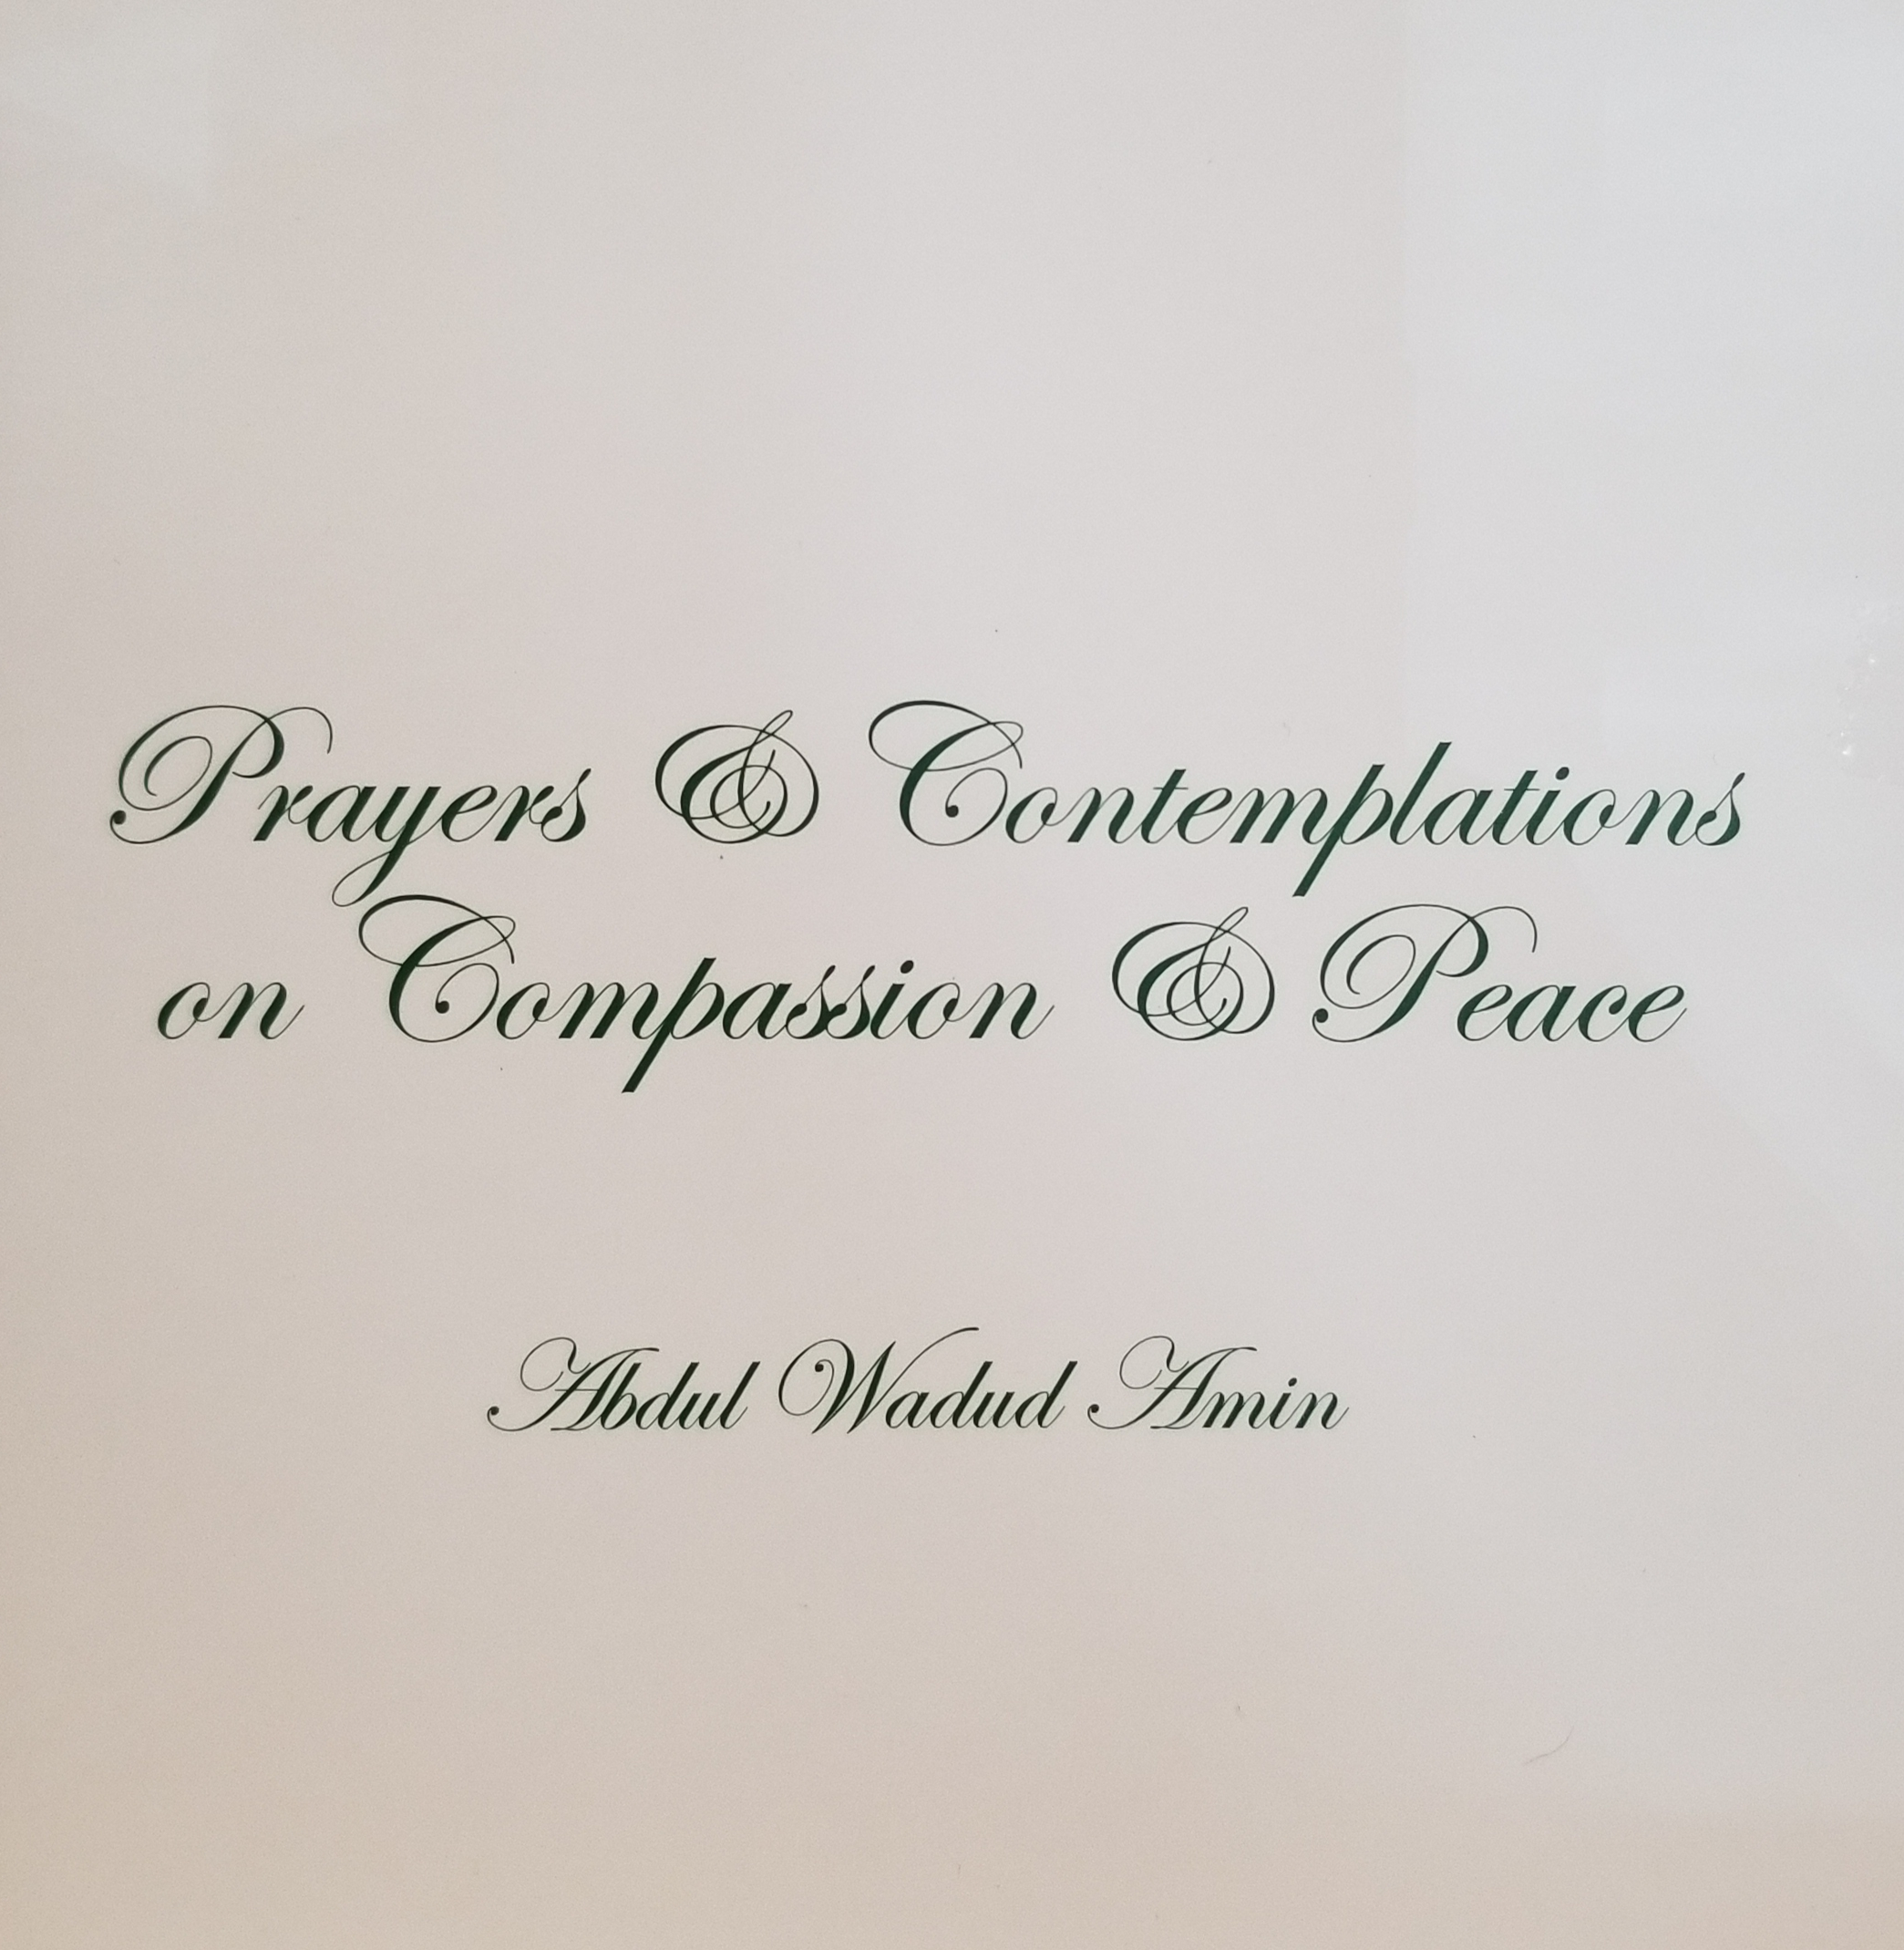 Prayers & Contemplation's on Compassion & Peace